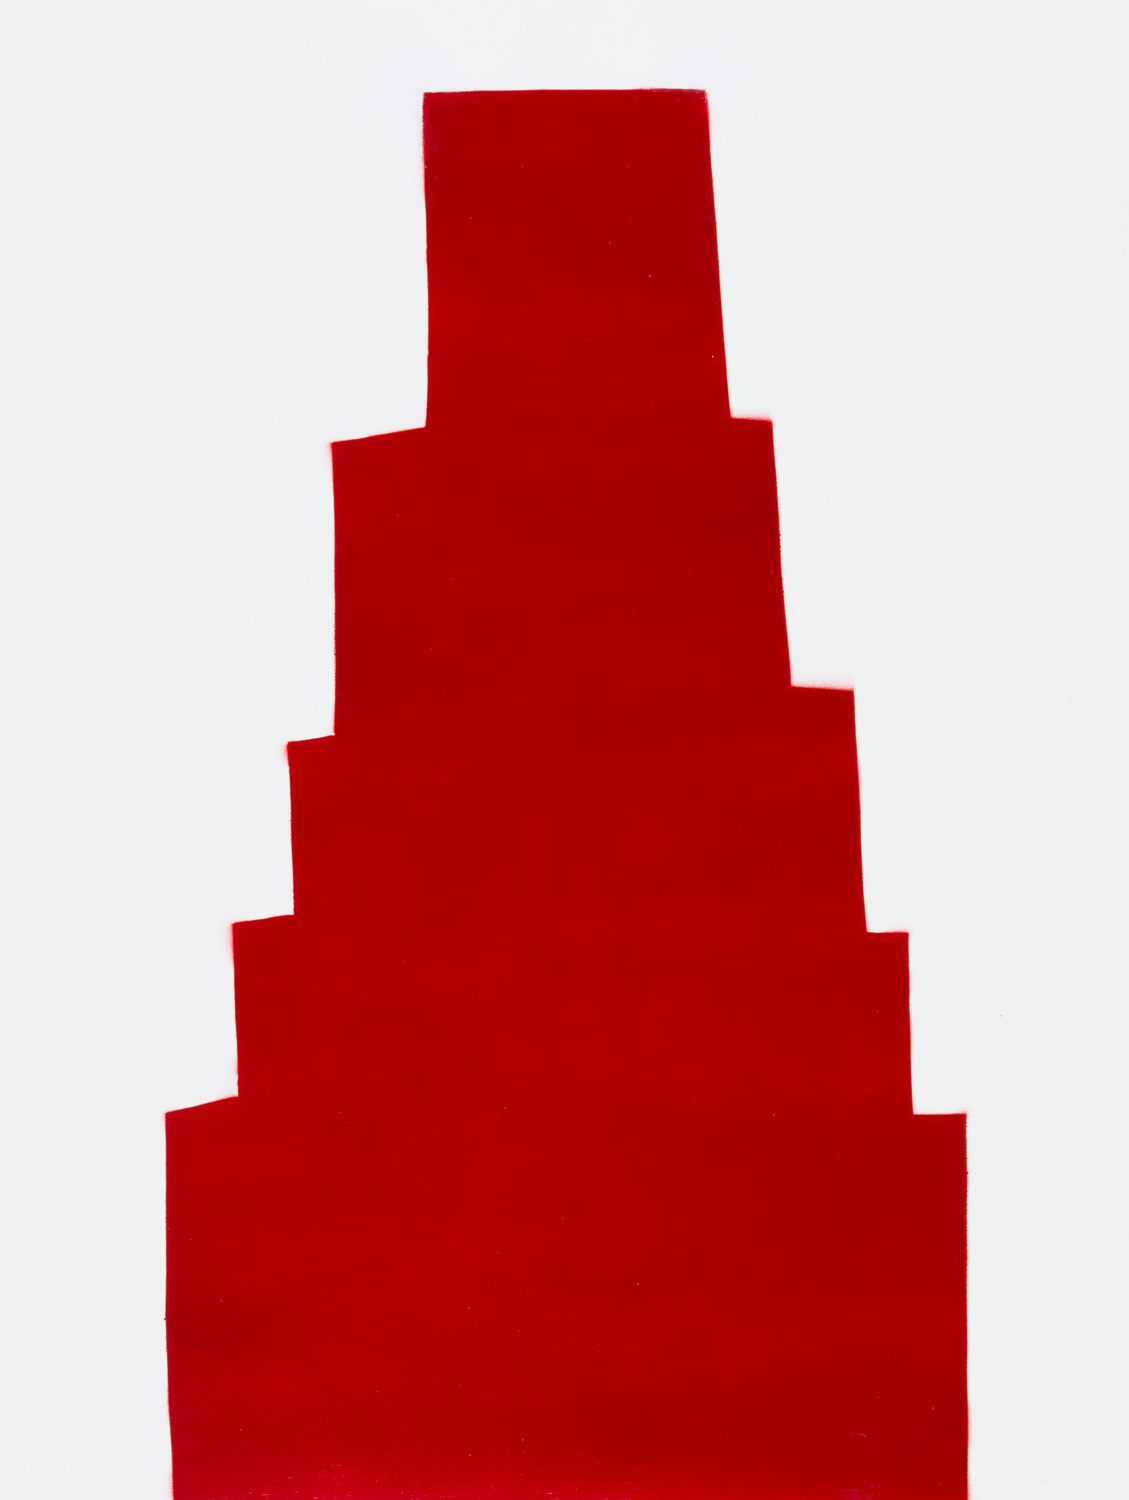 RED 60 , 2018 spray paint on panel 24 x 18 inches